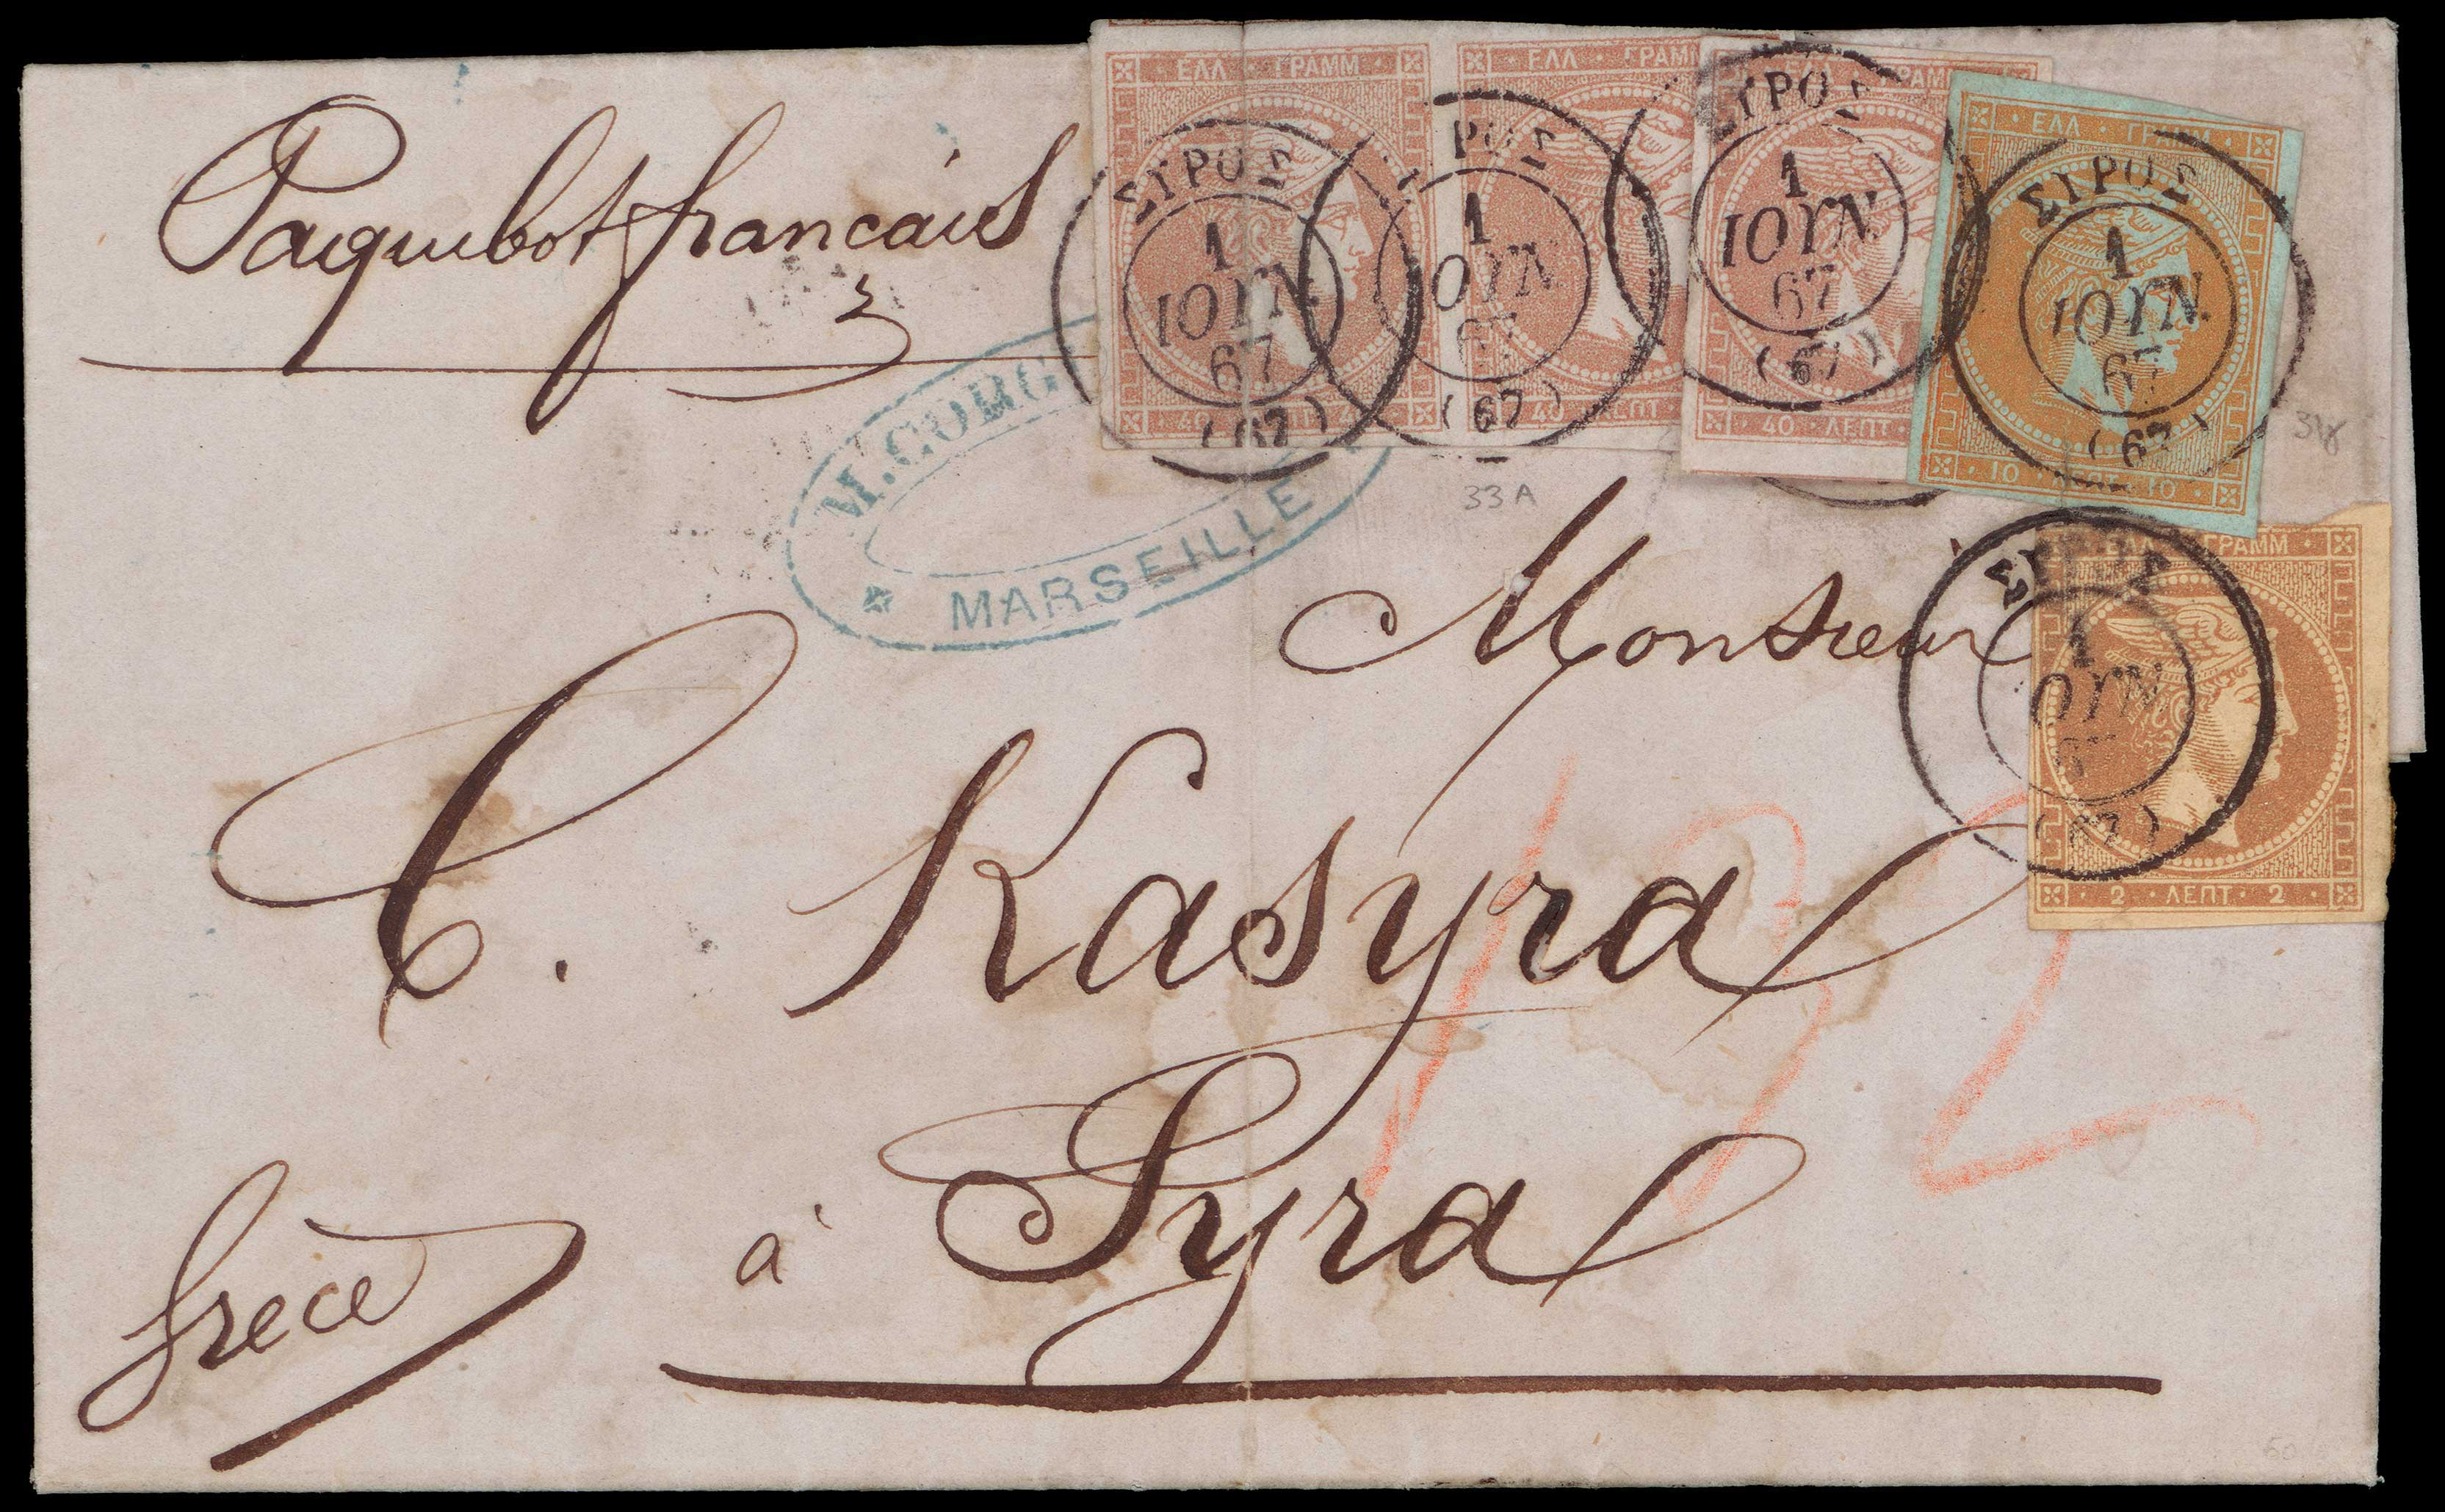 Lot 135 - -  LARGE HERMES HEAD 1862/67 consecutive athens printings -  A. Karamitsos Public & Live Internet Auction 666 Large Hermes Heads Exceptional Stamps from Great Collections